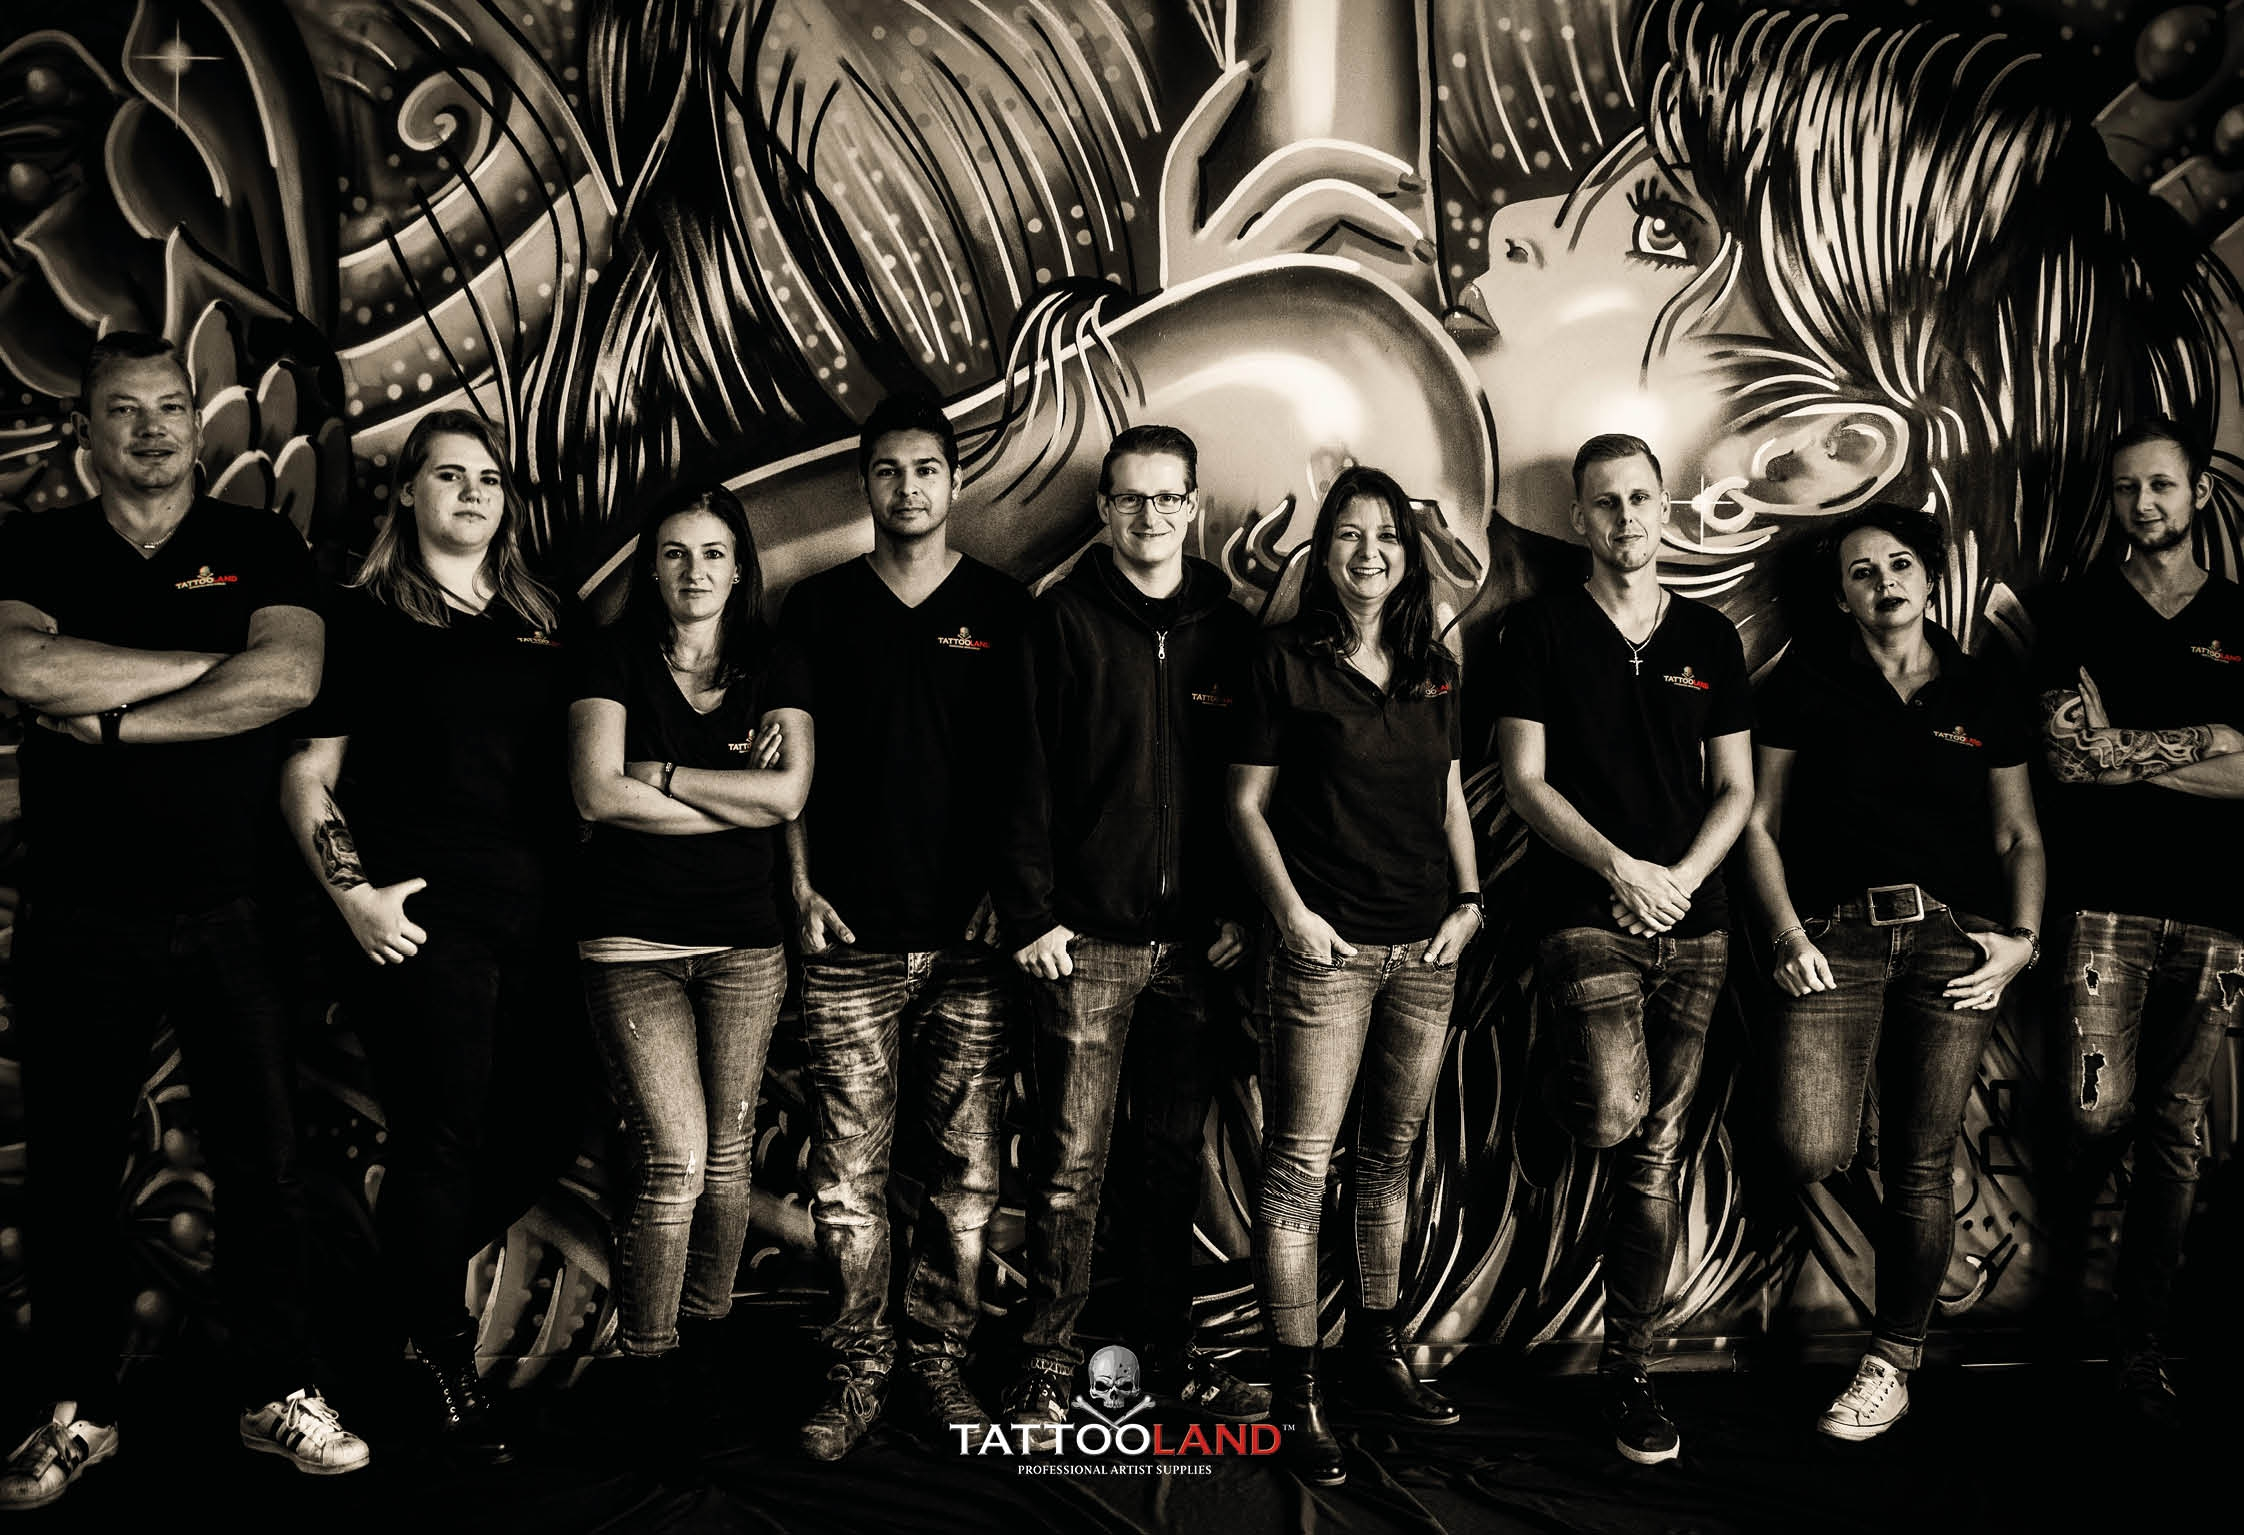 Team Tattooland